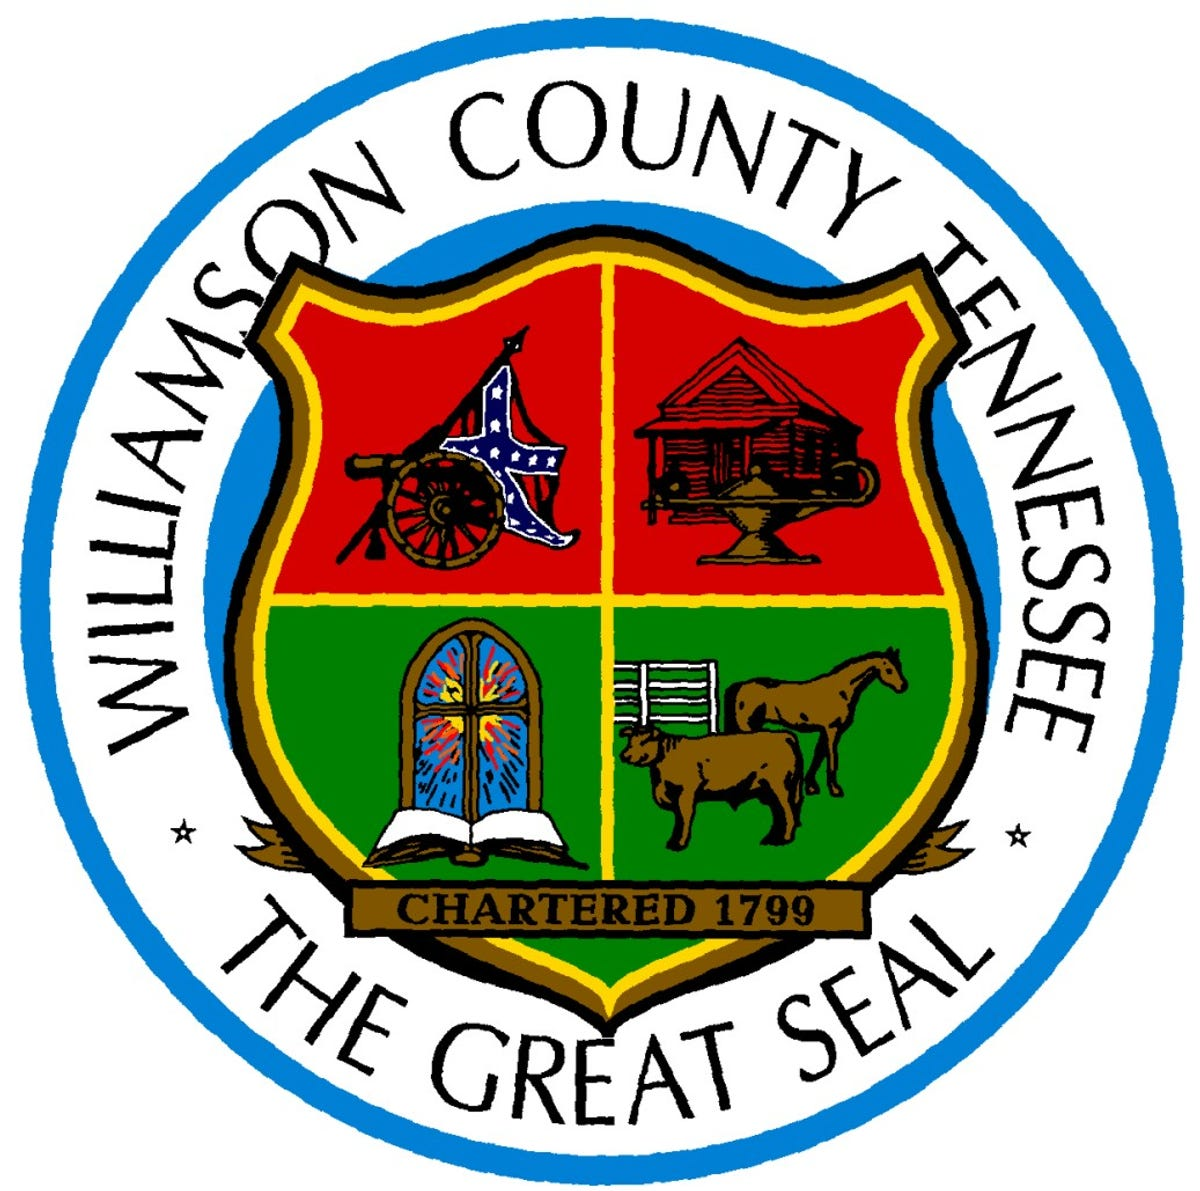 Williamson County Great Seal with crest